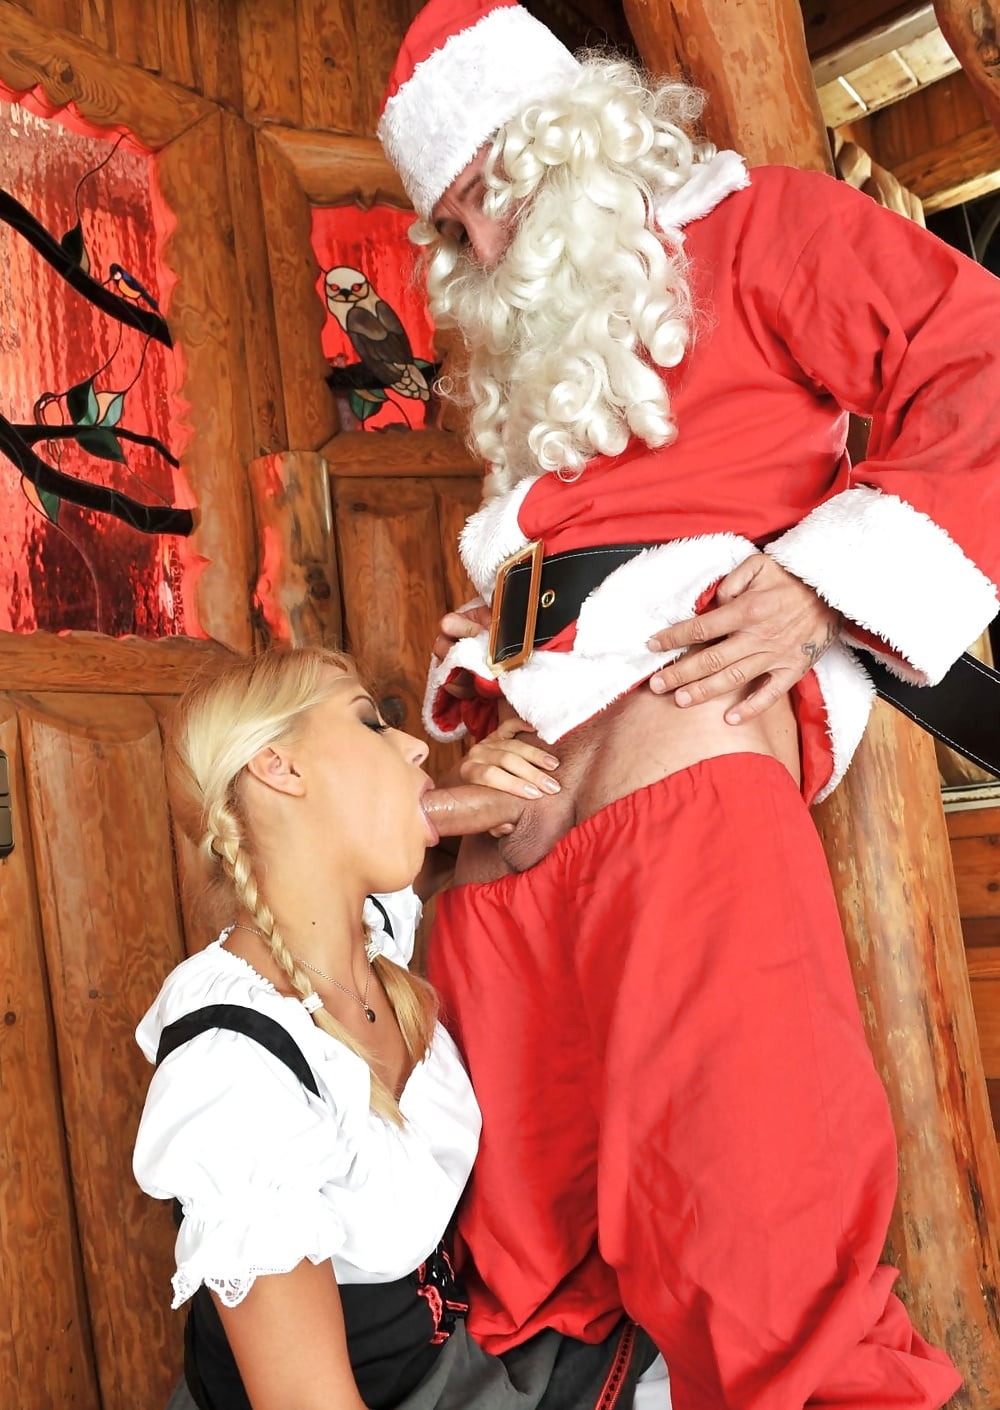 xxx-santa-blow-job-photos-masturbation-distorts-bidy